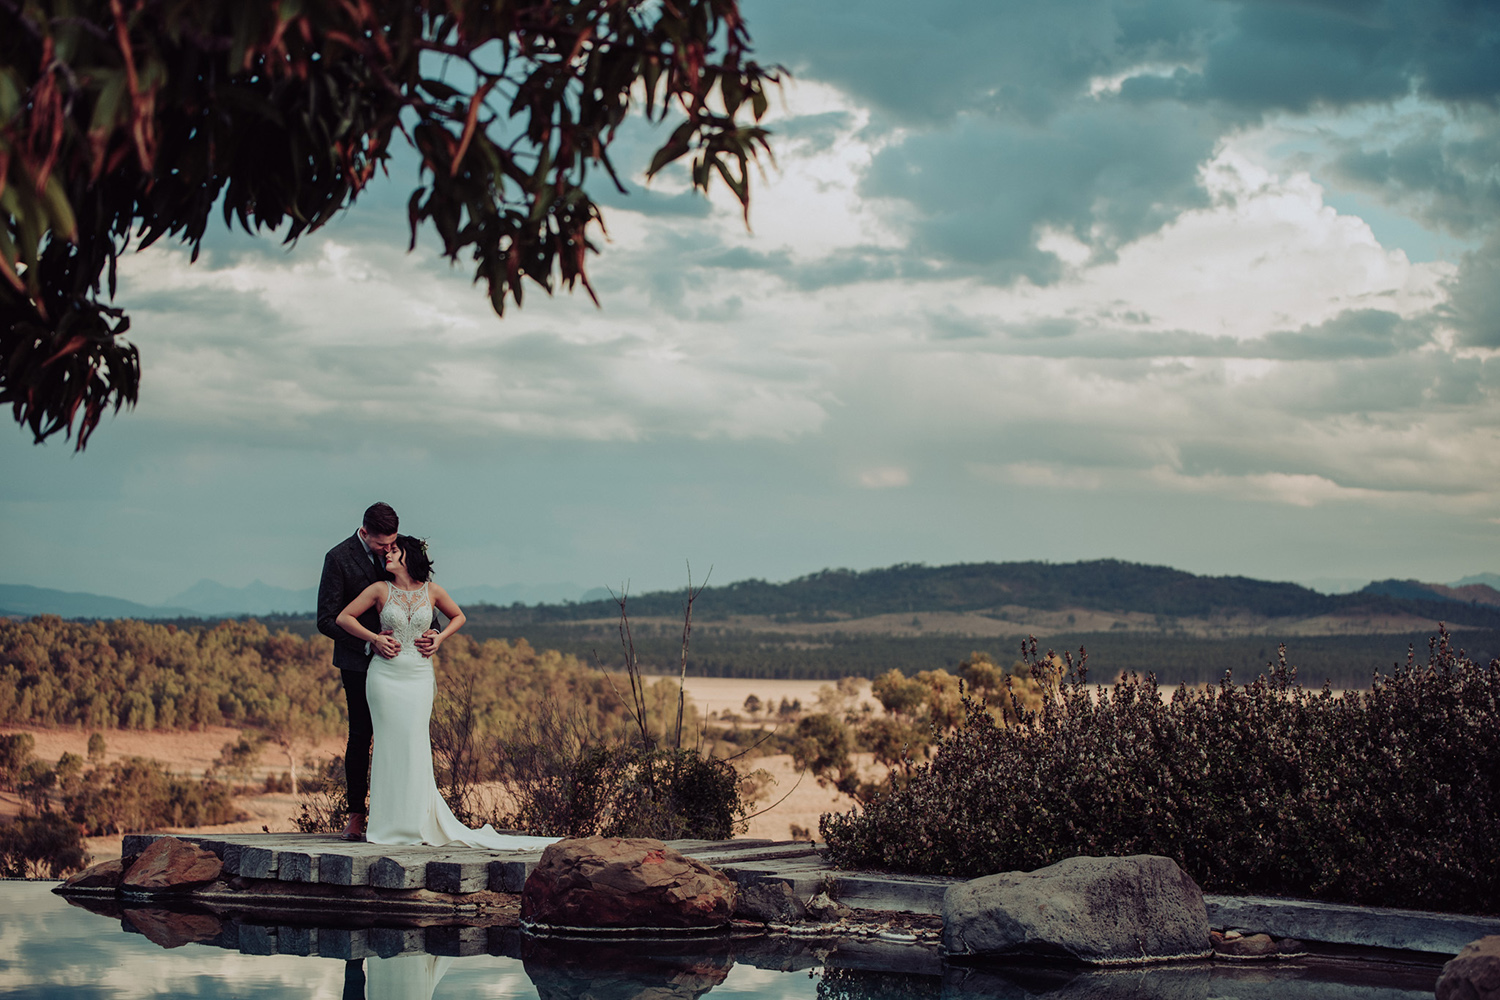 Natural, yet stylish wedding photography